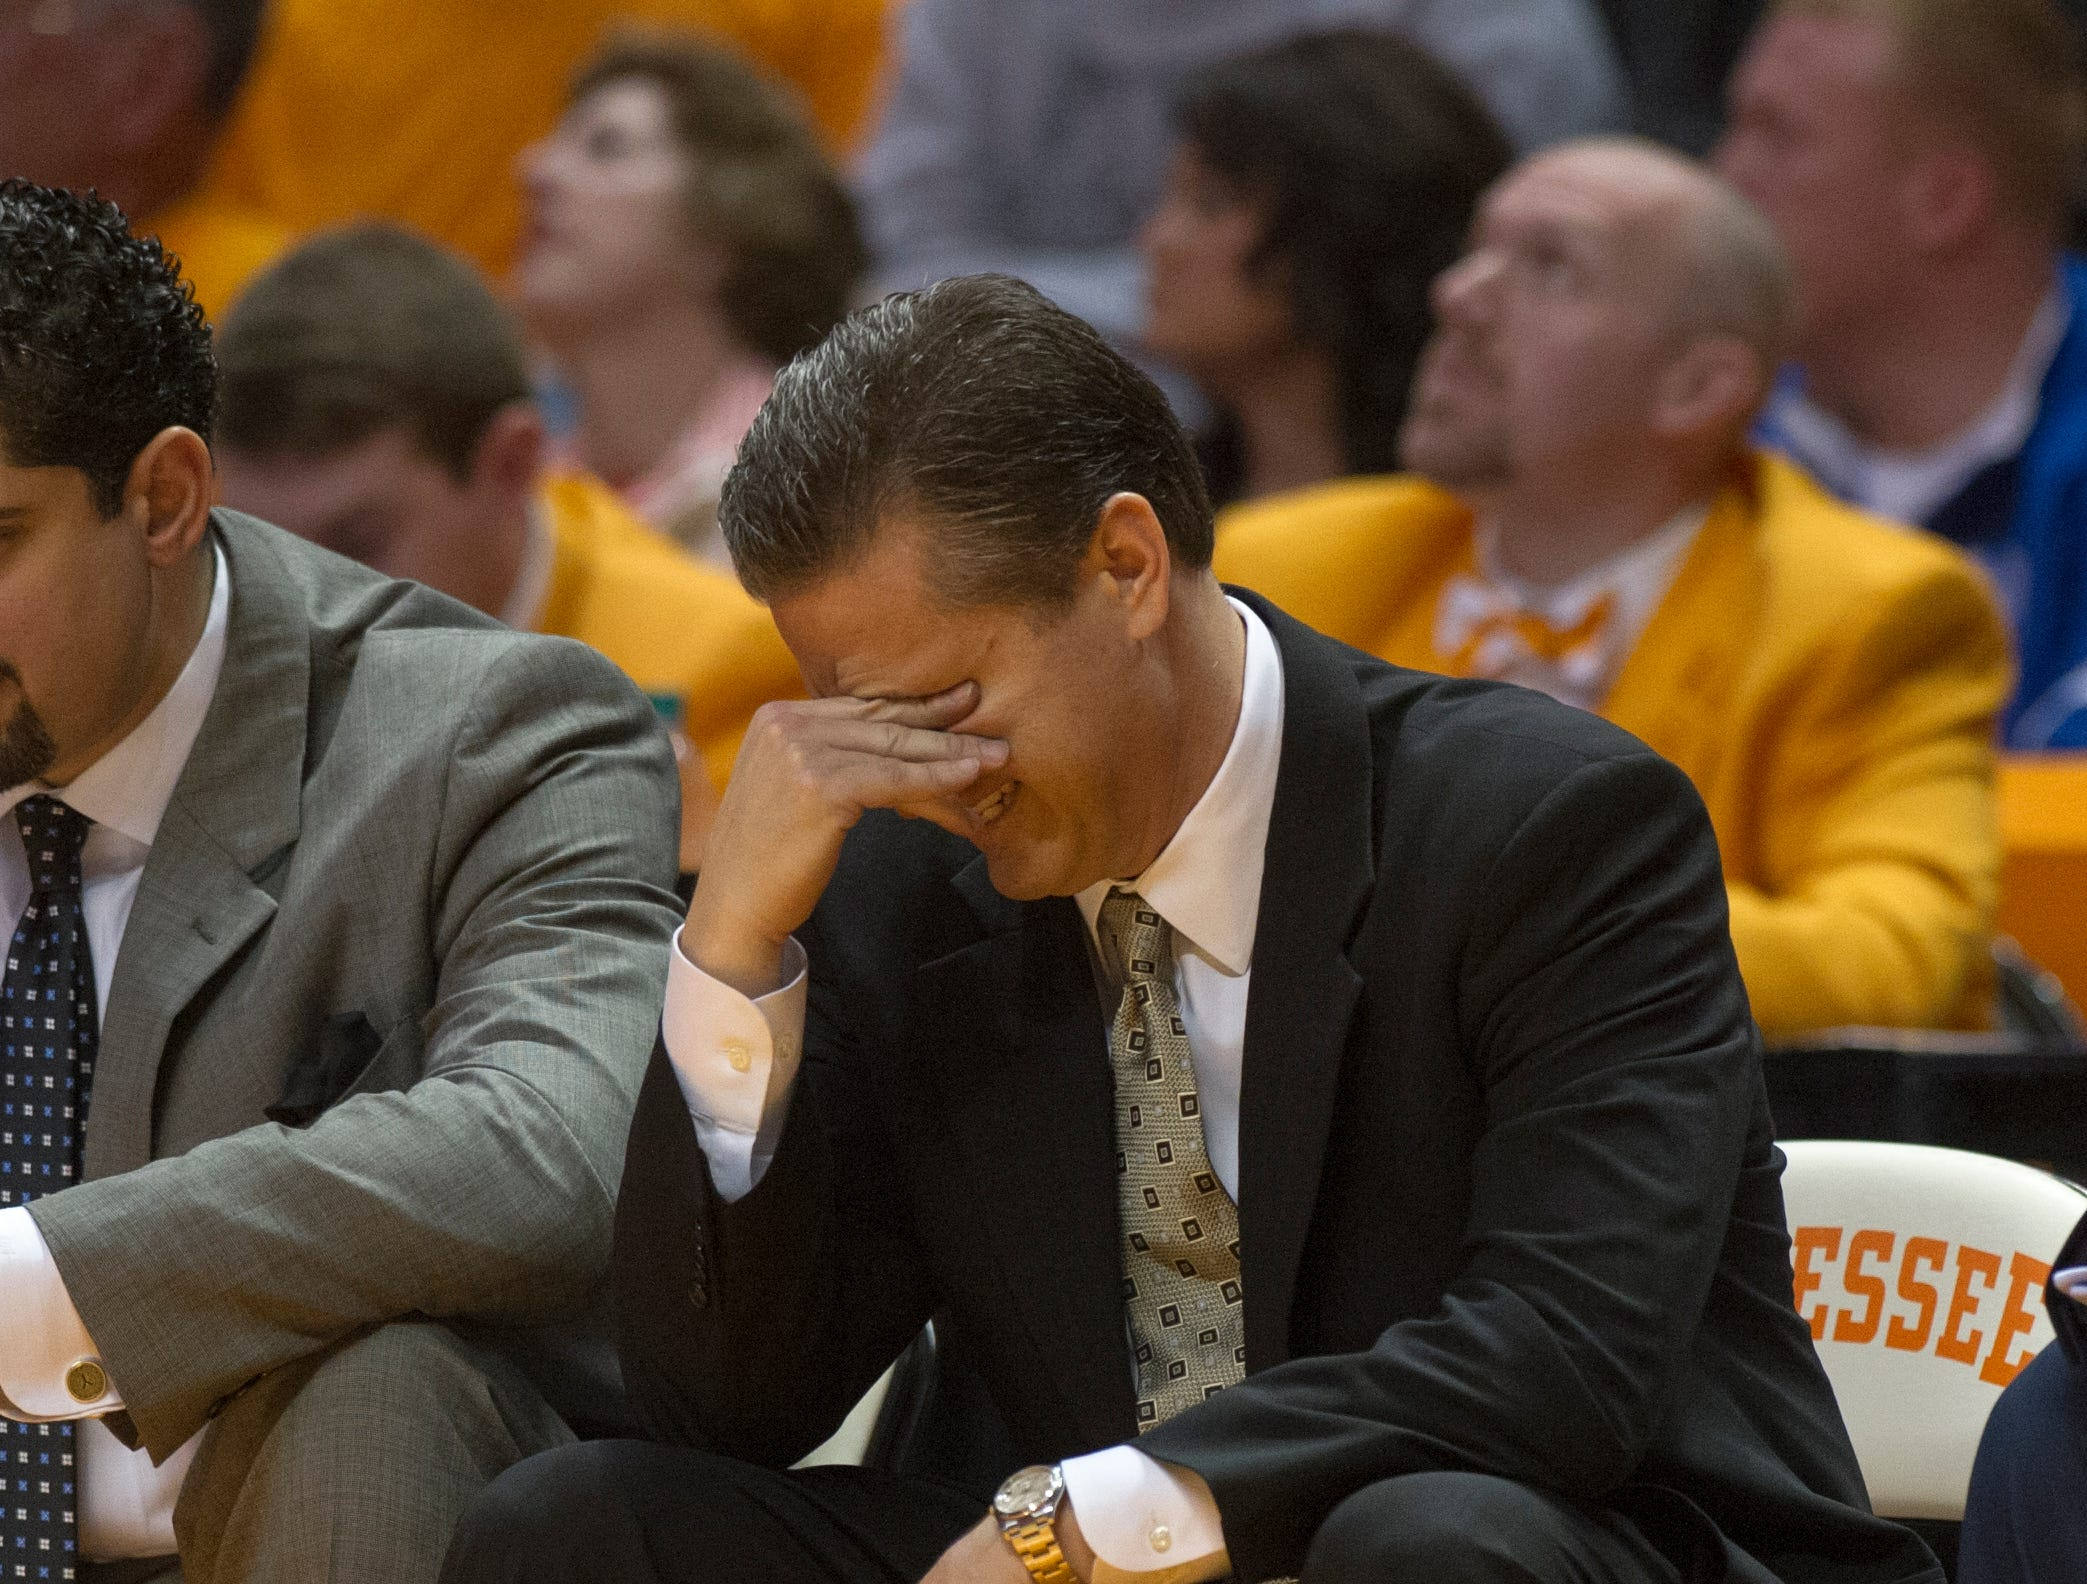 Kentucky head coach John Calipari reacts during the second half against Tennessee at Thompson-Boling Arena Saturday, Feb. 16, 2013. Tennessee won 88-58 over Kentucky.